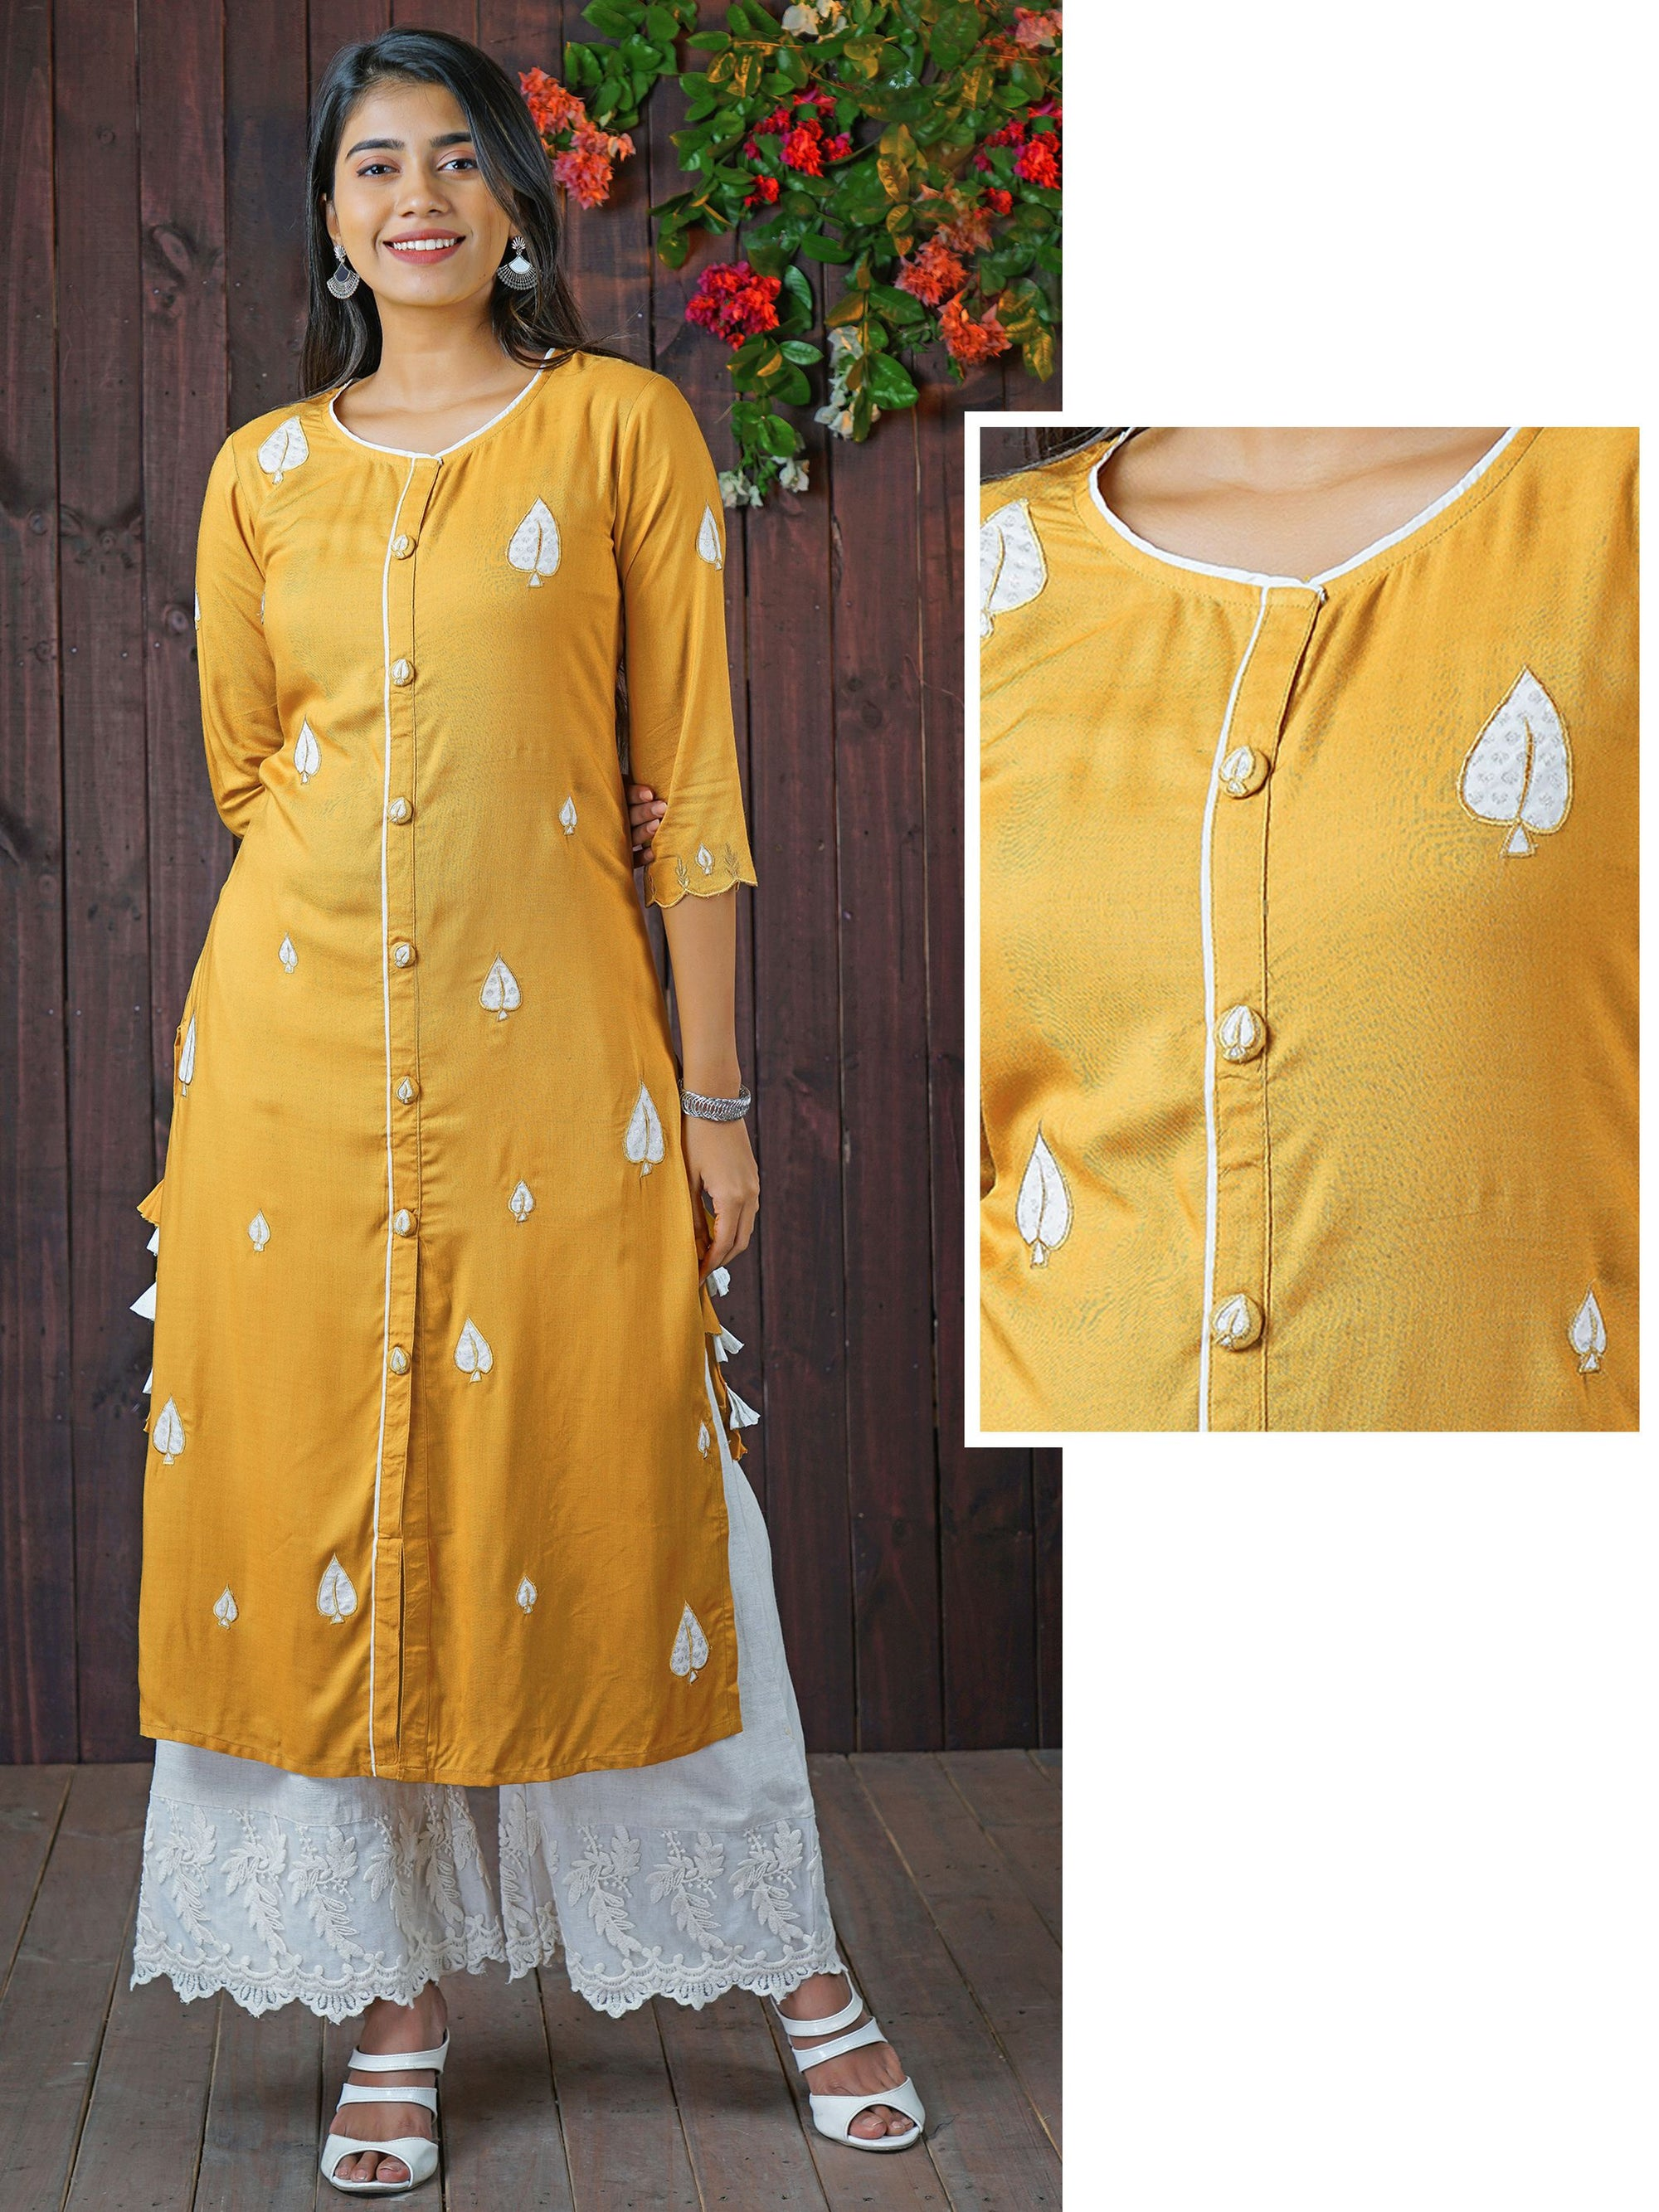 Silver Leaf Patch Worked Panel Kurti with Tassels - Mustard Yellow